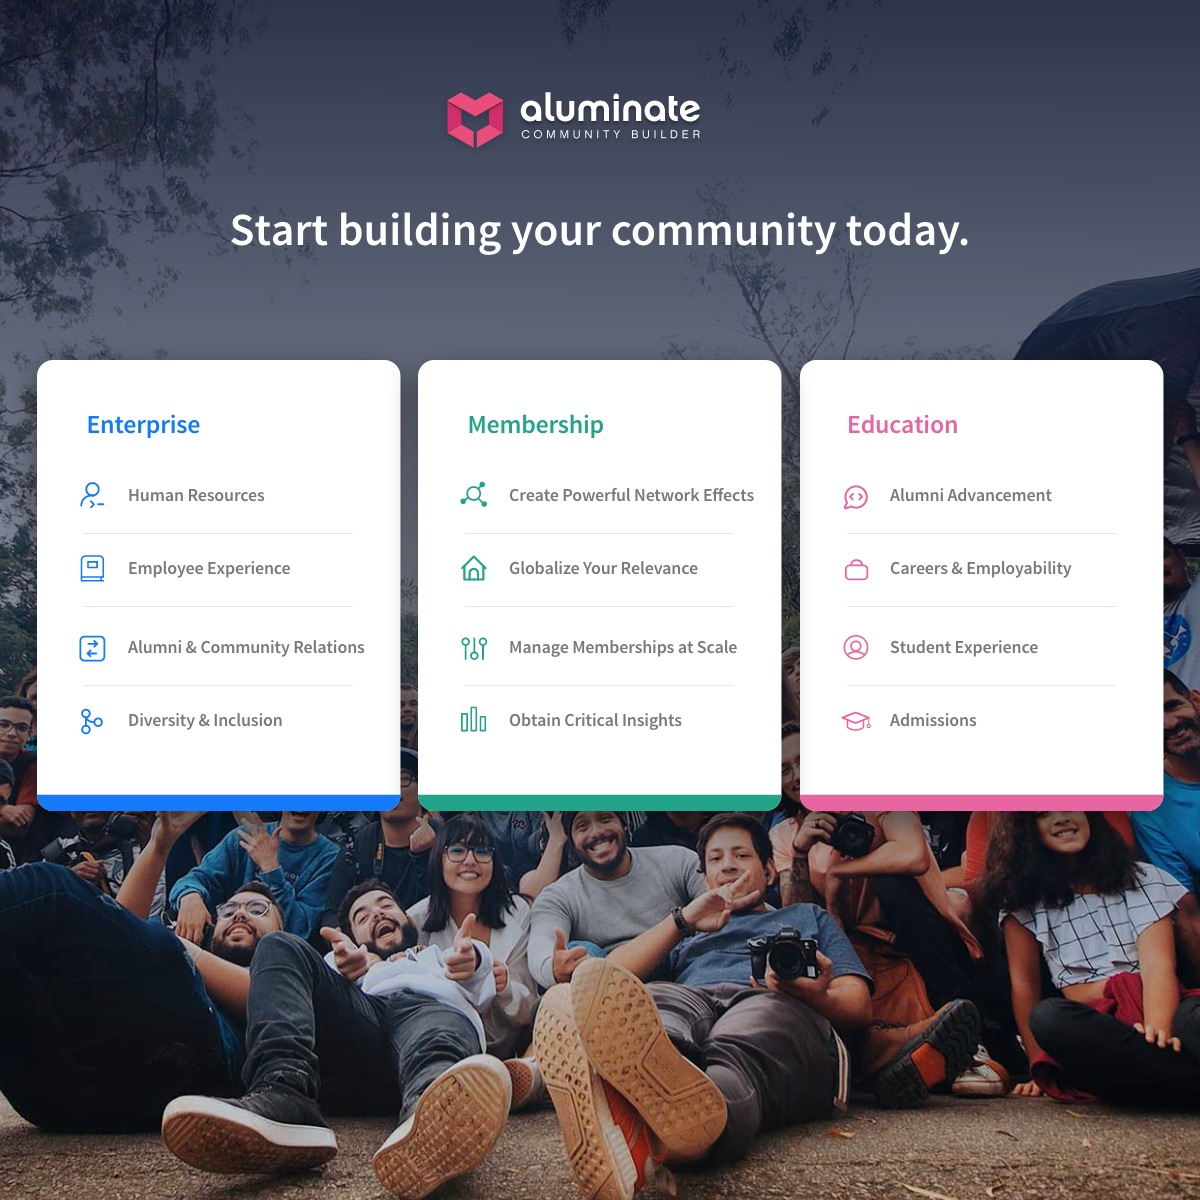 What Community Are You Building